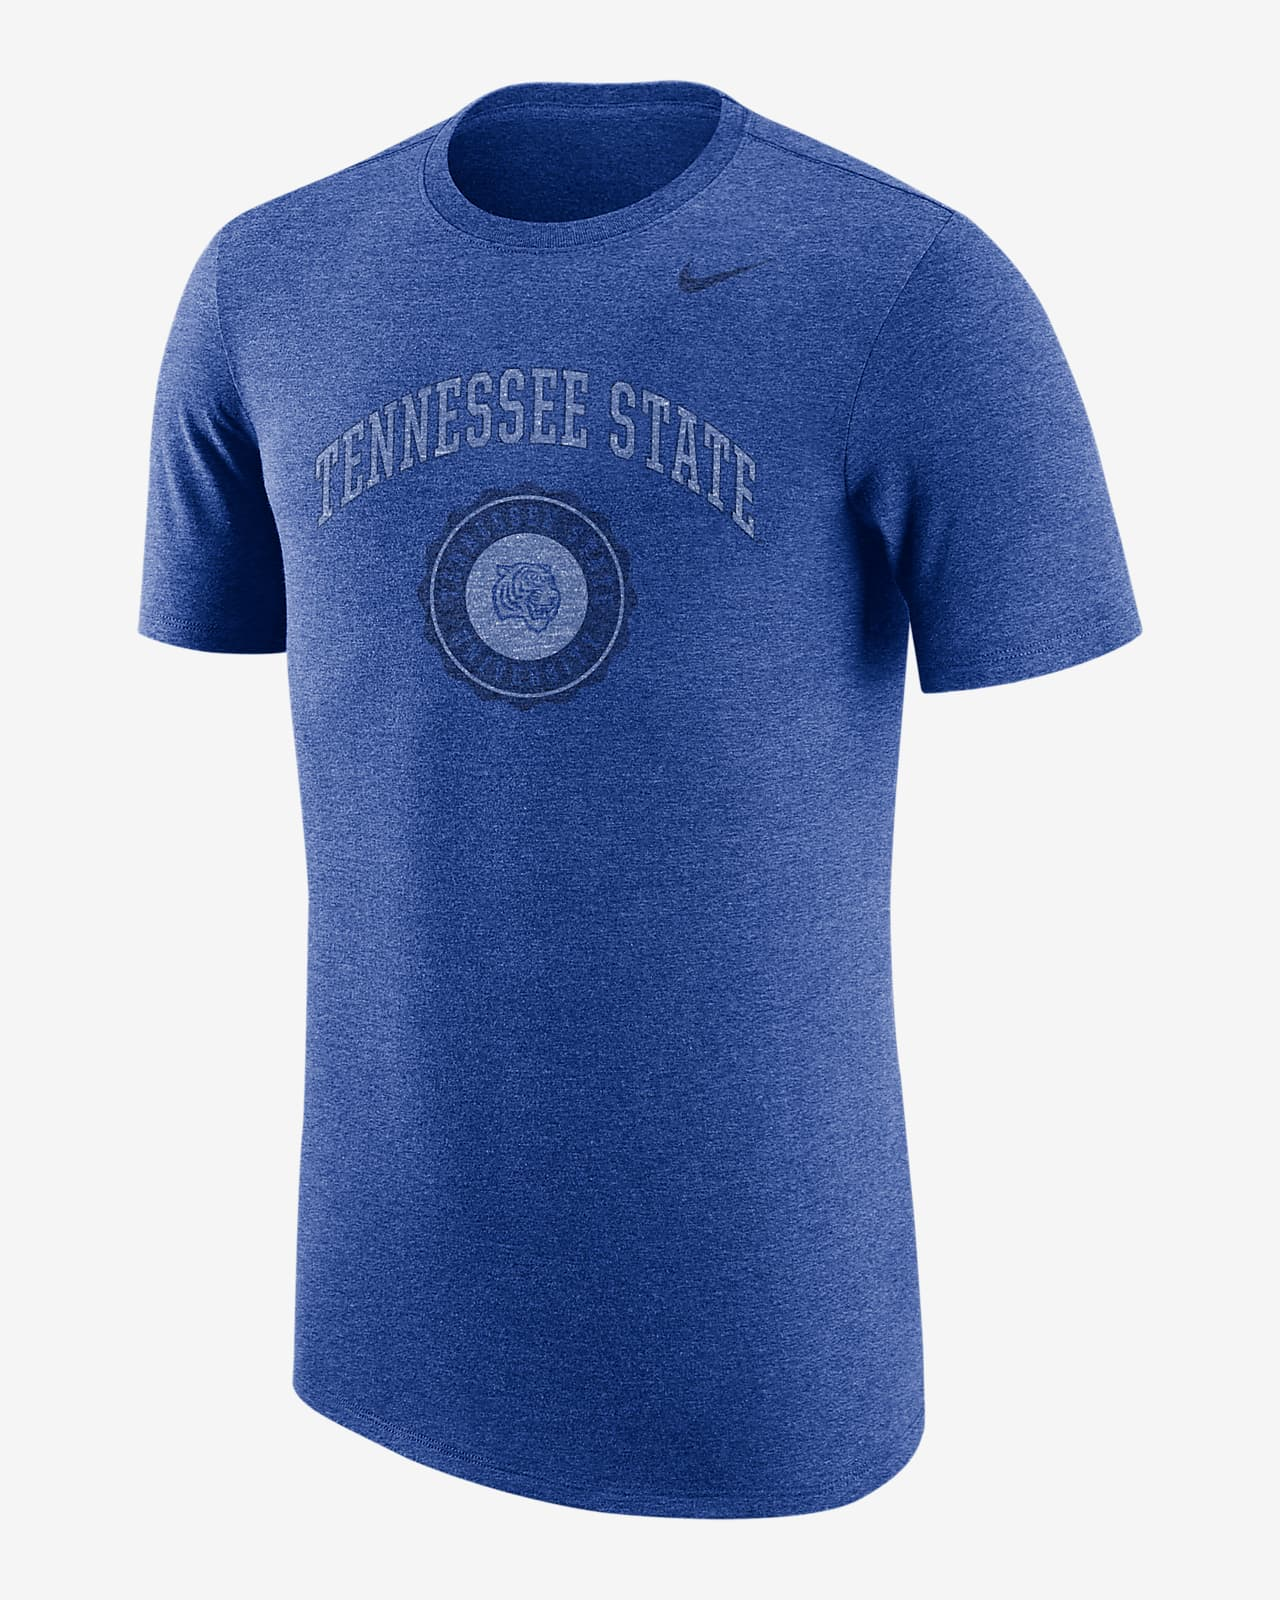 Nike College (Tennessee State) Men's T-Shirt